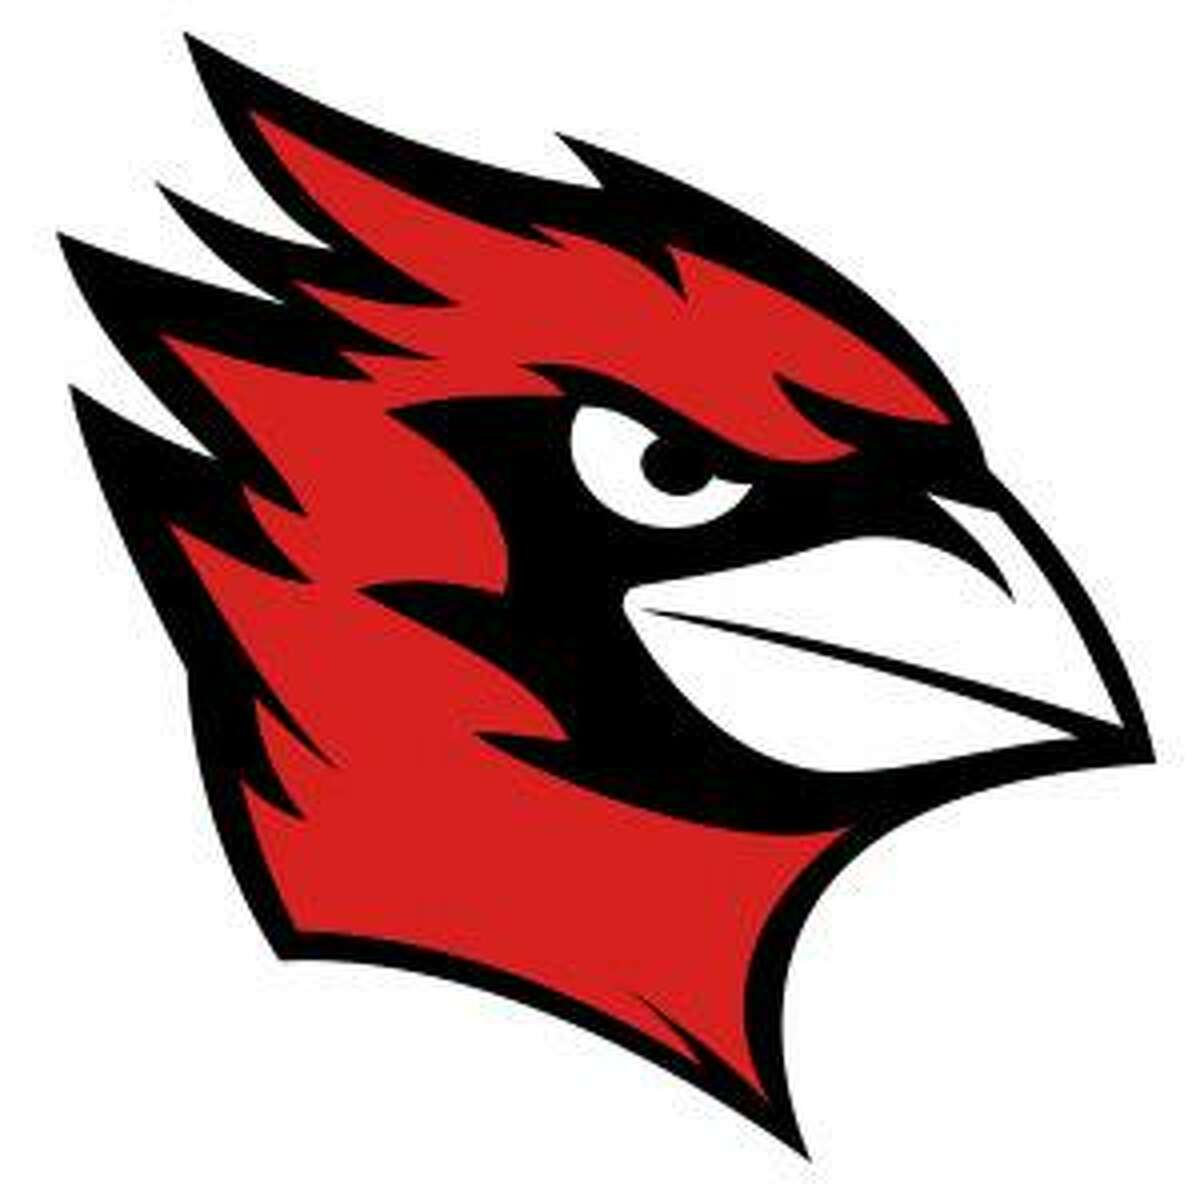 The new athletics logo for Wesleyan University sports depicts a